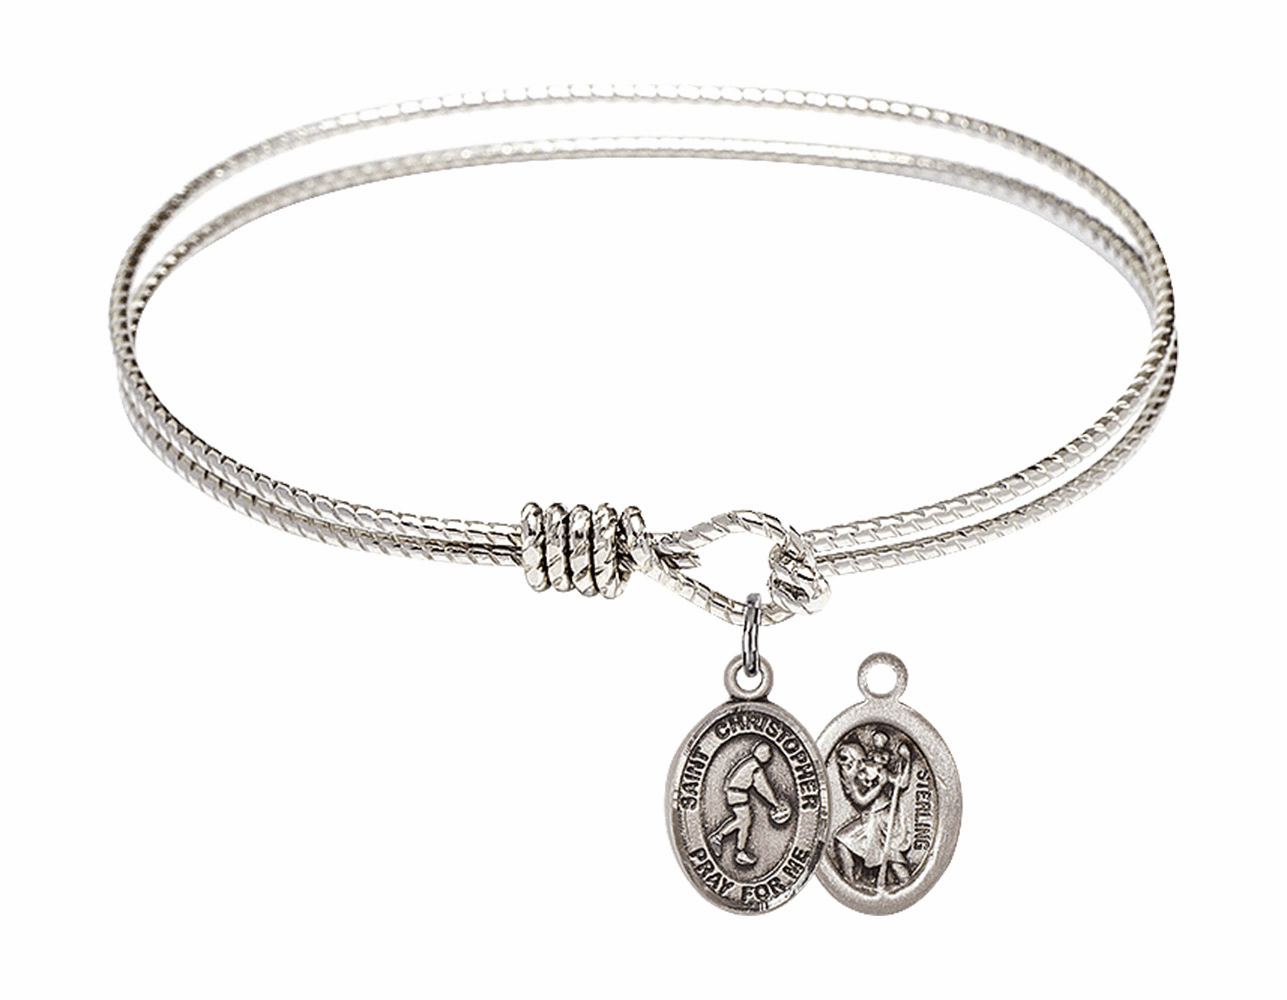 Twist Round Eye Hook St Christopher Basketball Bangle Charm Bracelet by Bliss